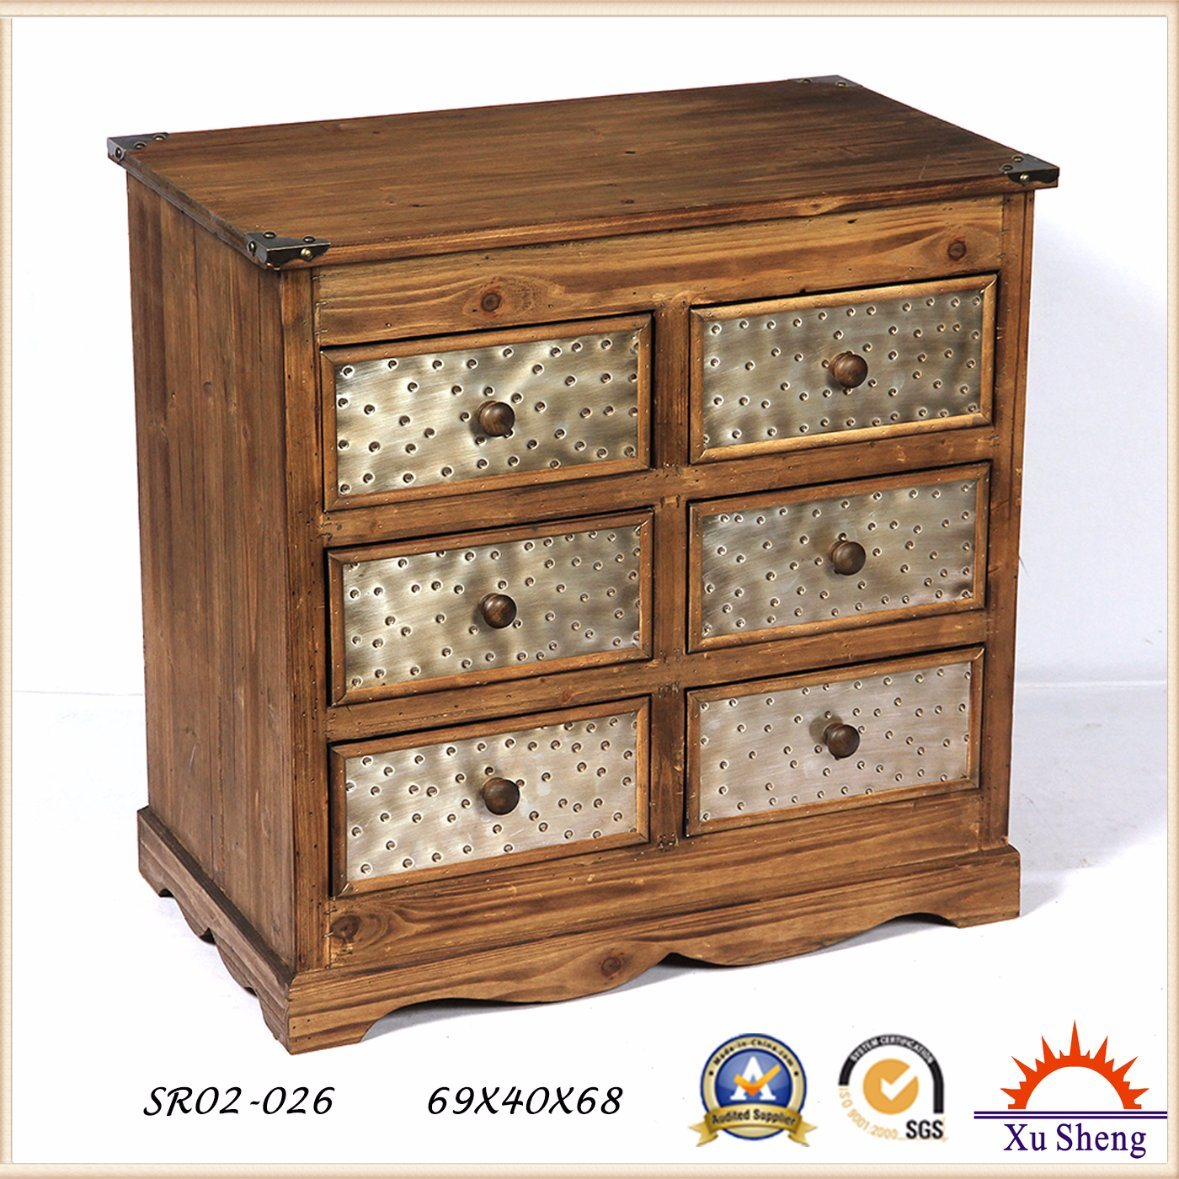 Antique Furniture Decorative Rustic Brown Natural Wood Gift Box